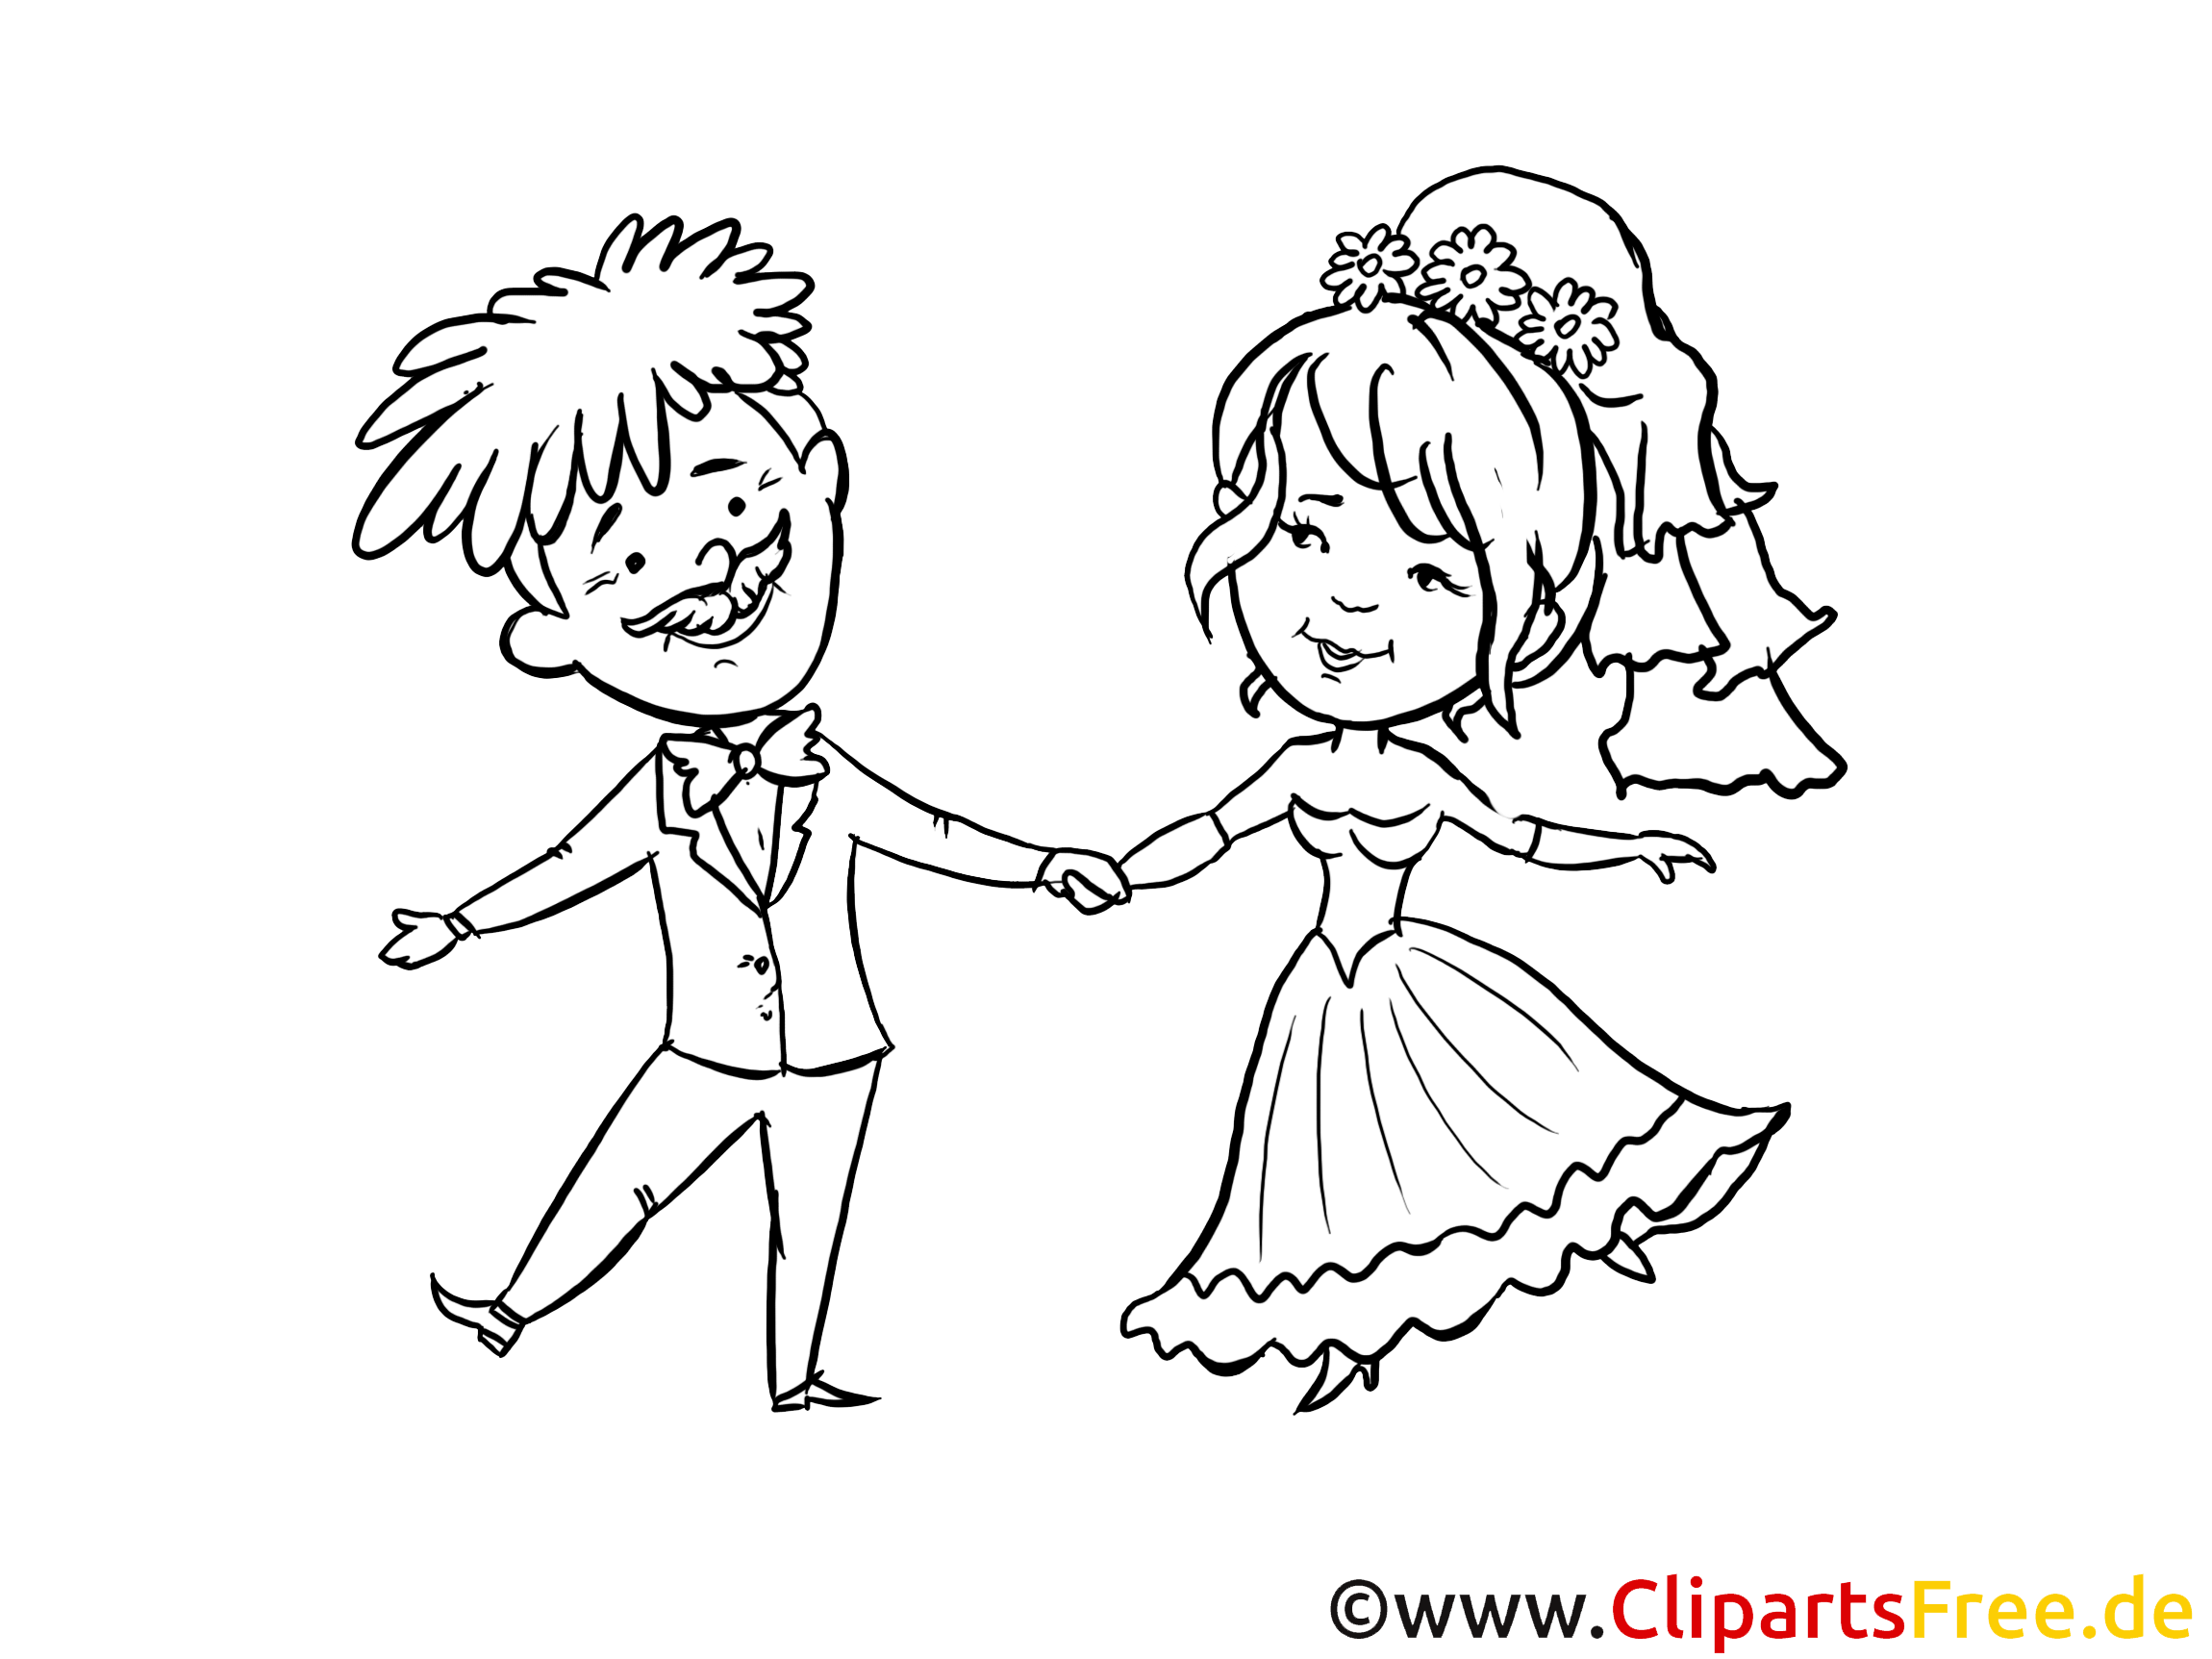 Coloriage gratuite couple - Mariage clipart